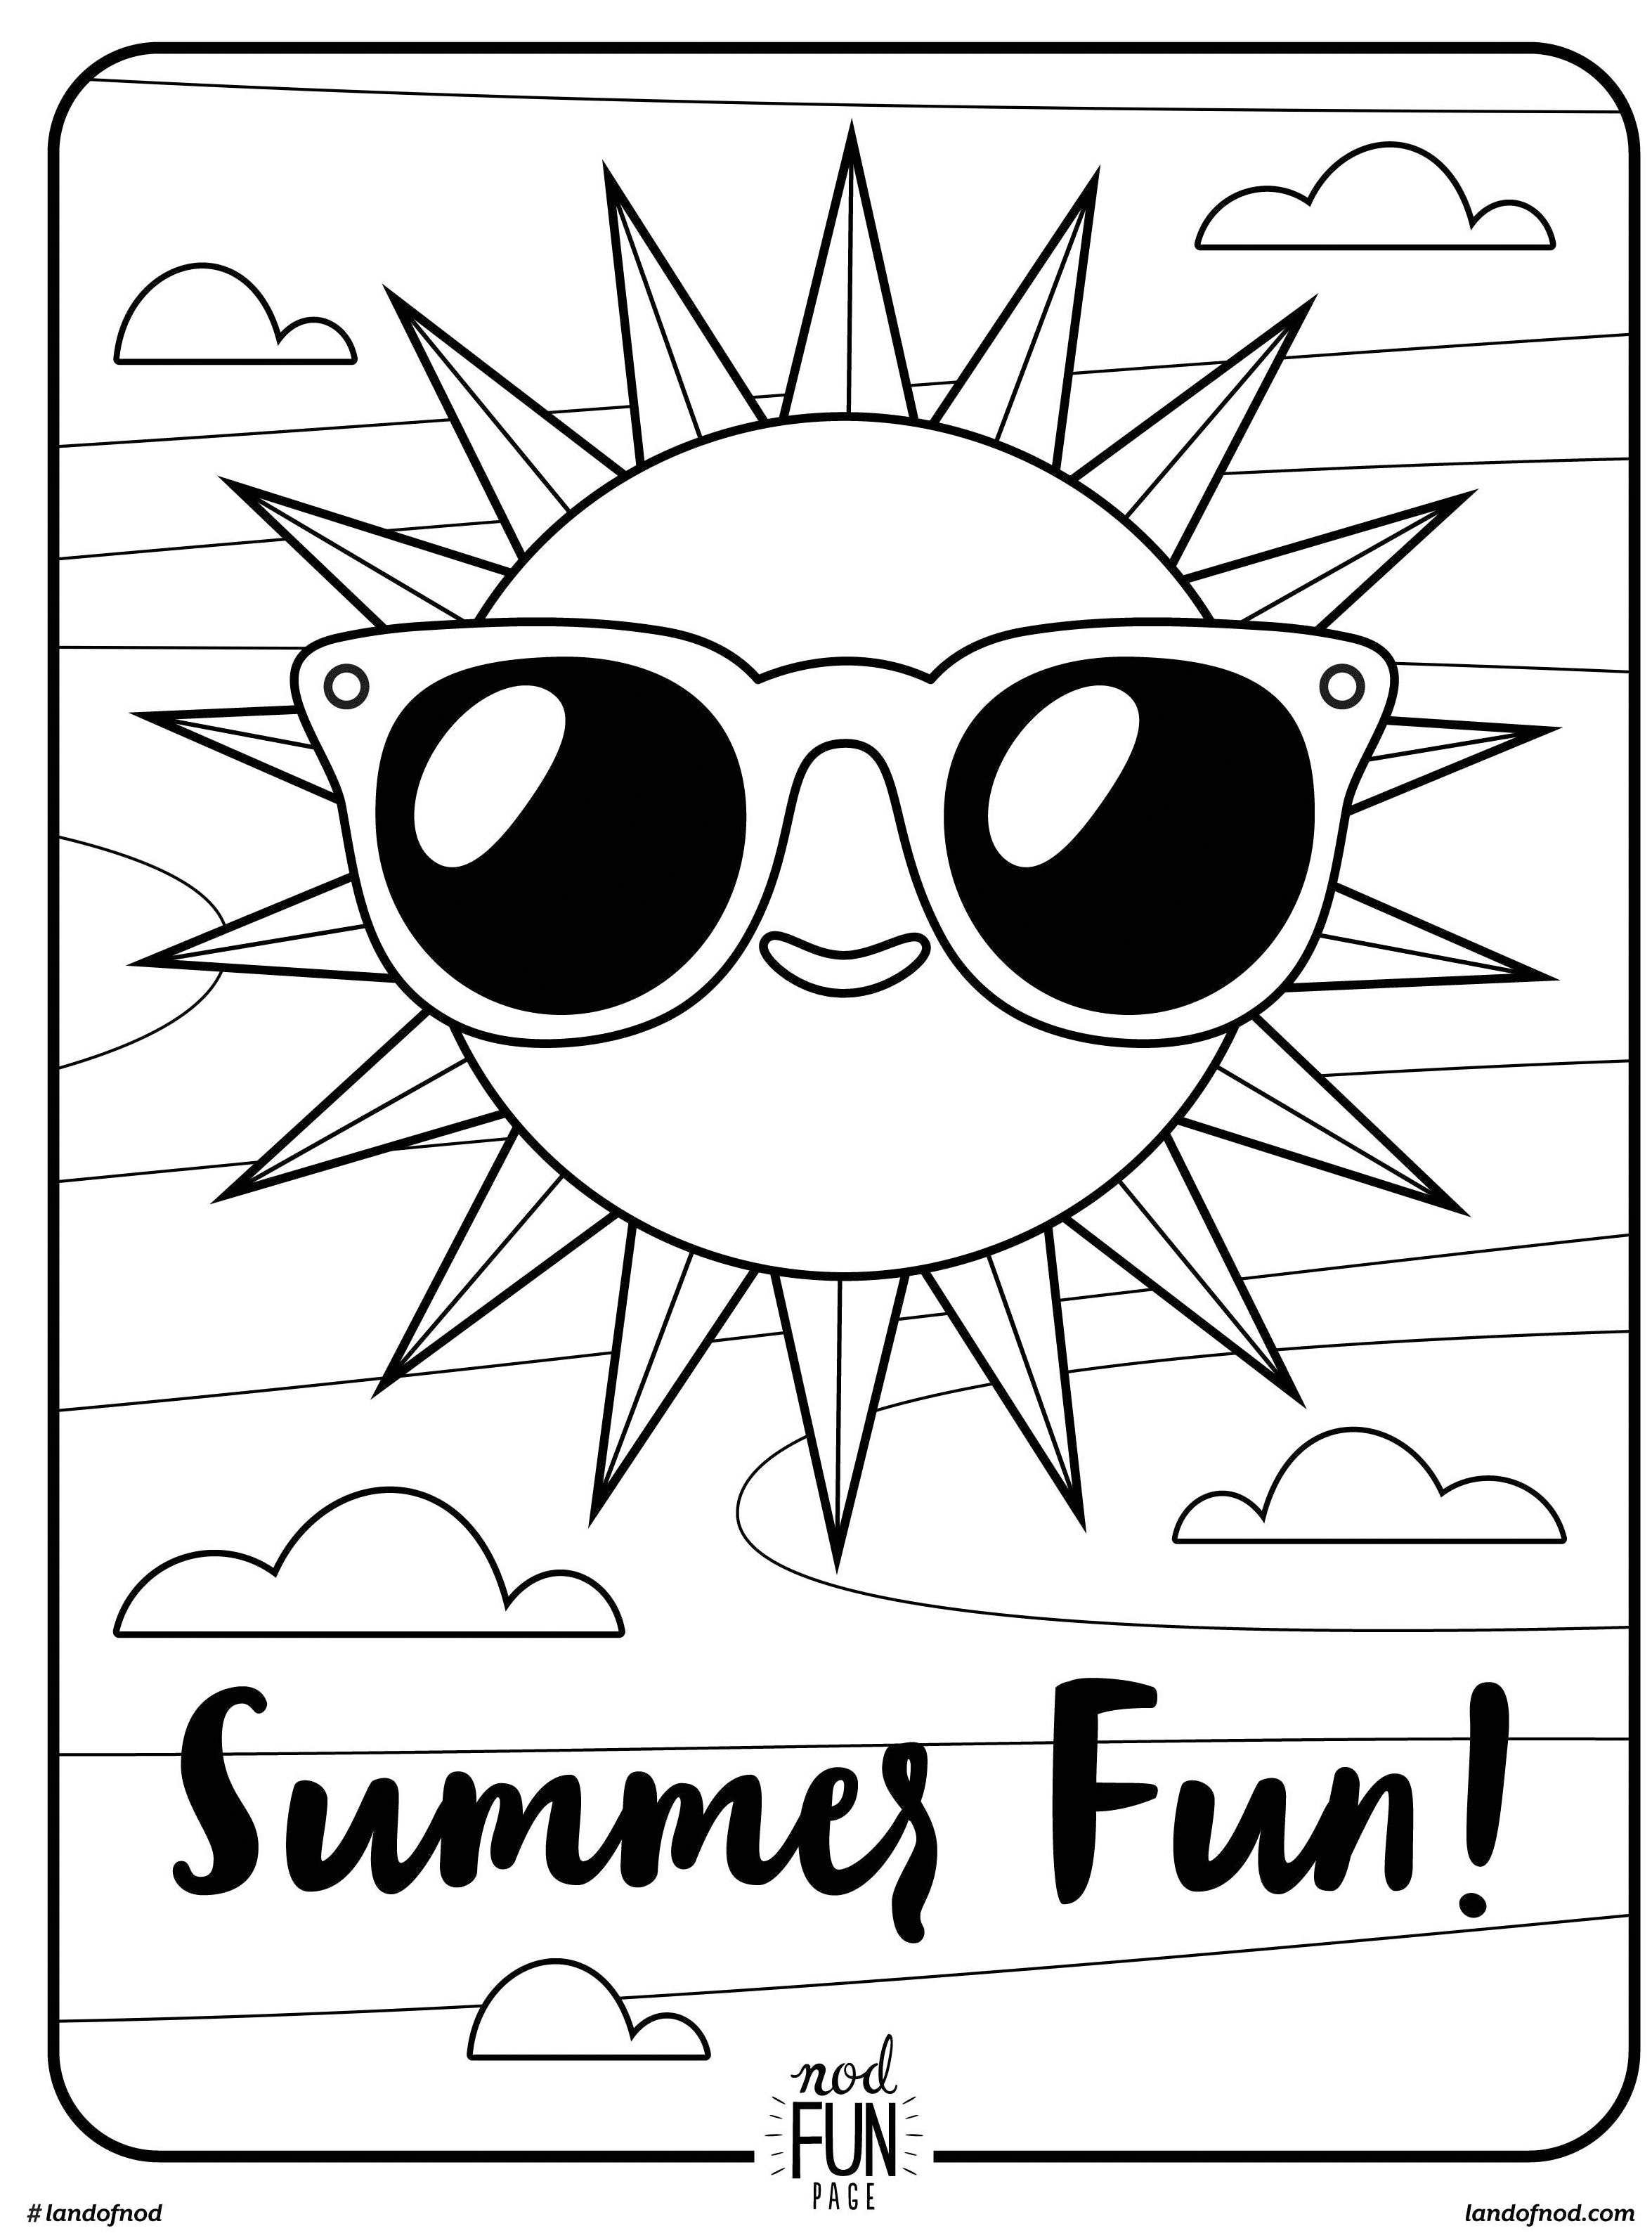 Daylight Savings Time Coloring Pages At Getcolorings